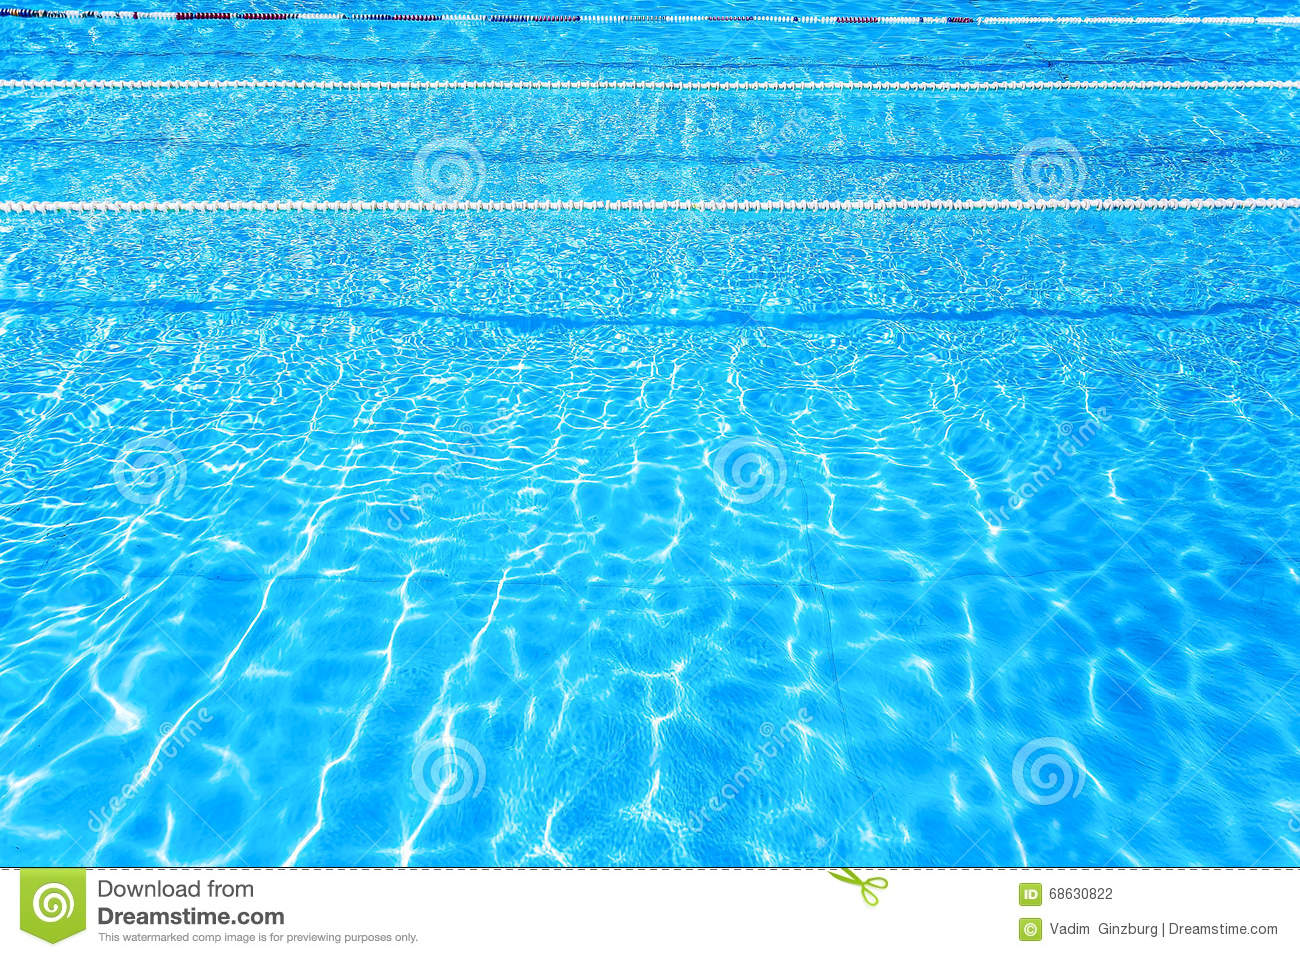 Seamless Pool Water Texture seamless swimming pool water stock photo - image: 68630822